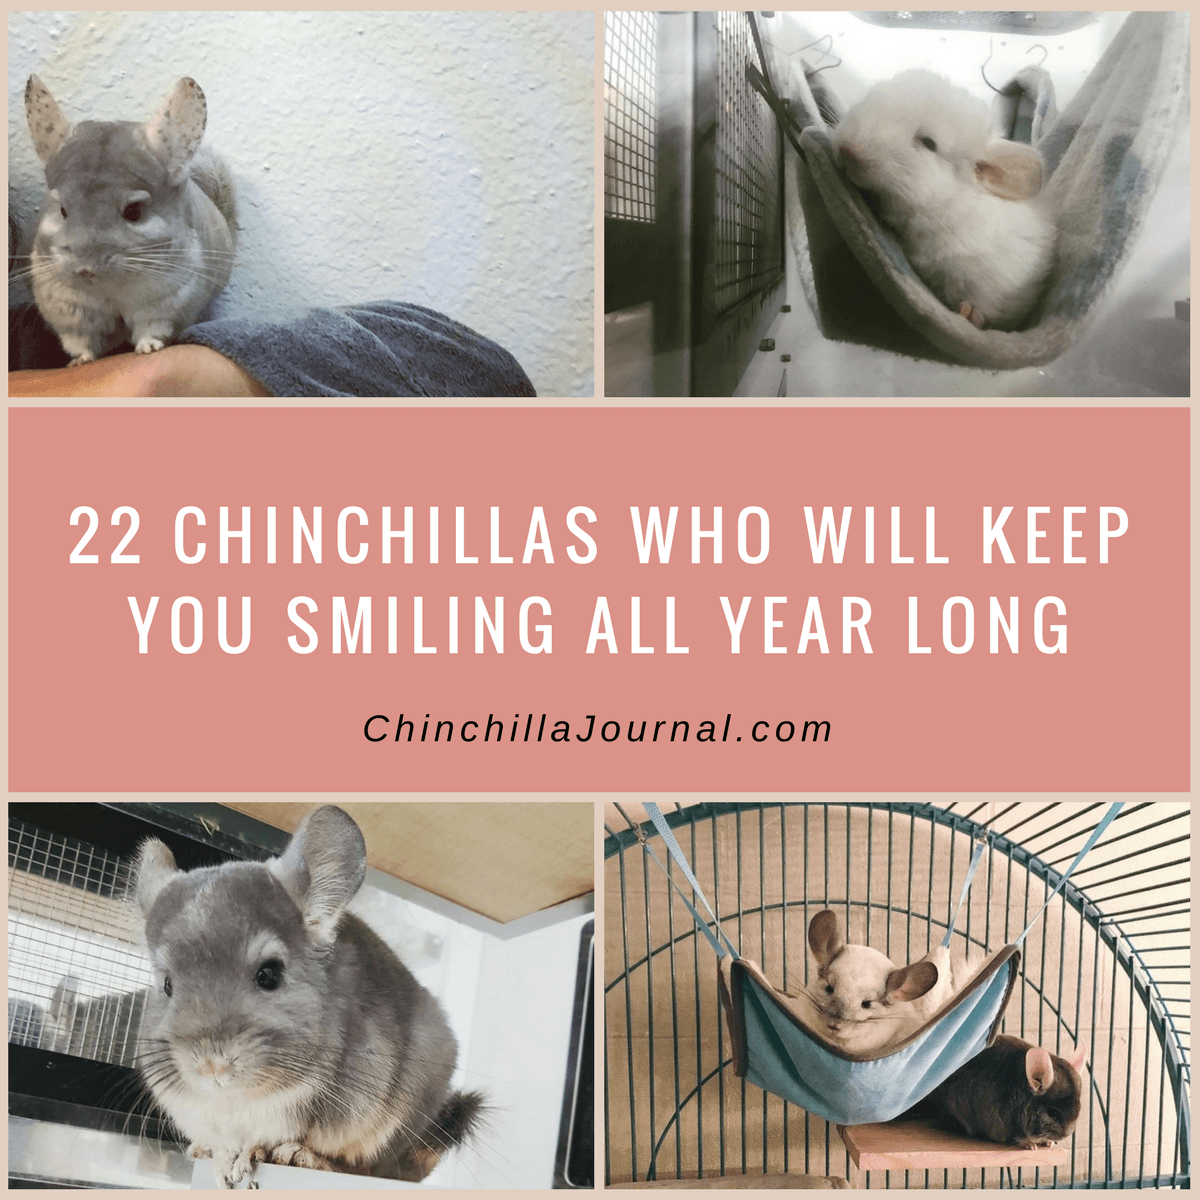 22 Chinchillas Who Will Keep You Smiling All Year Long